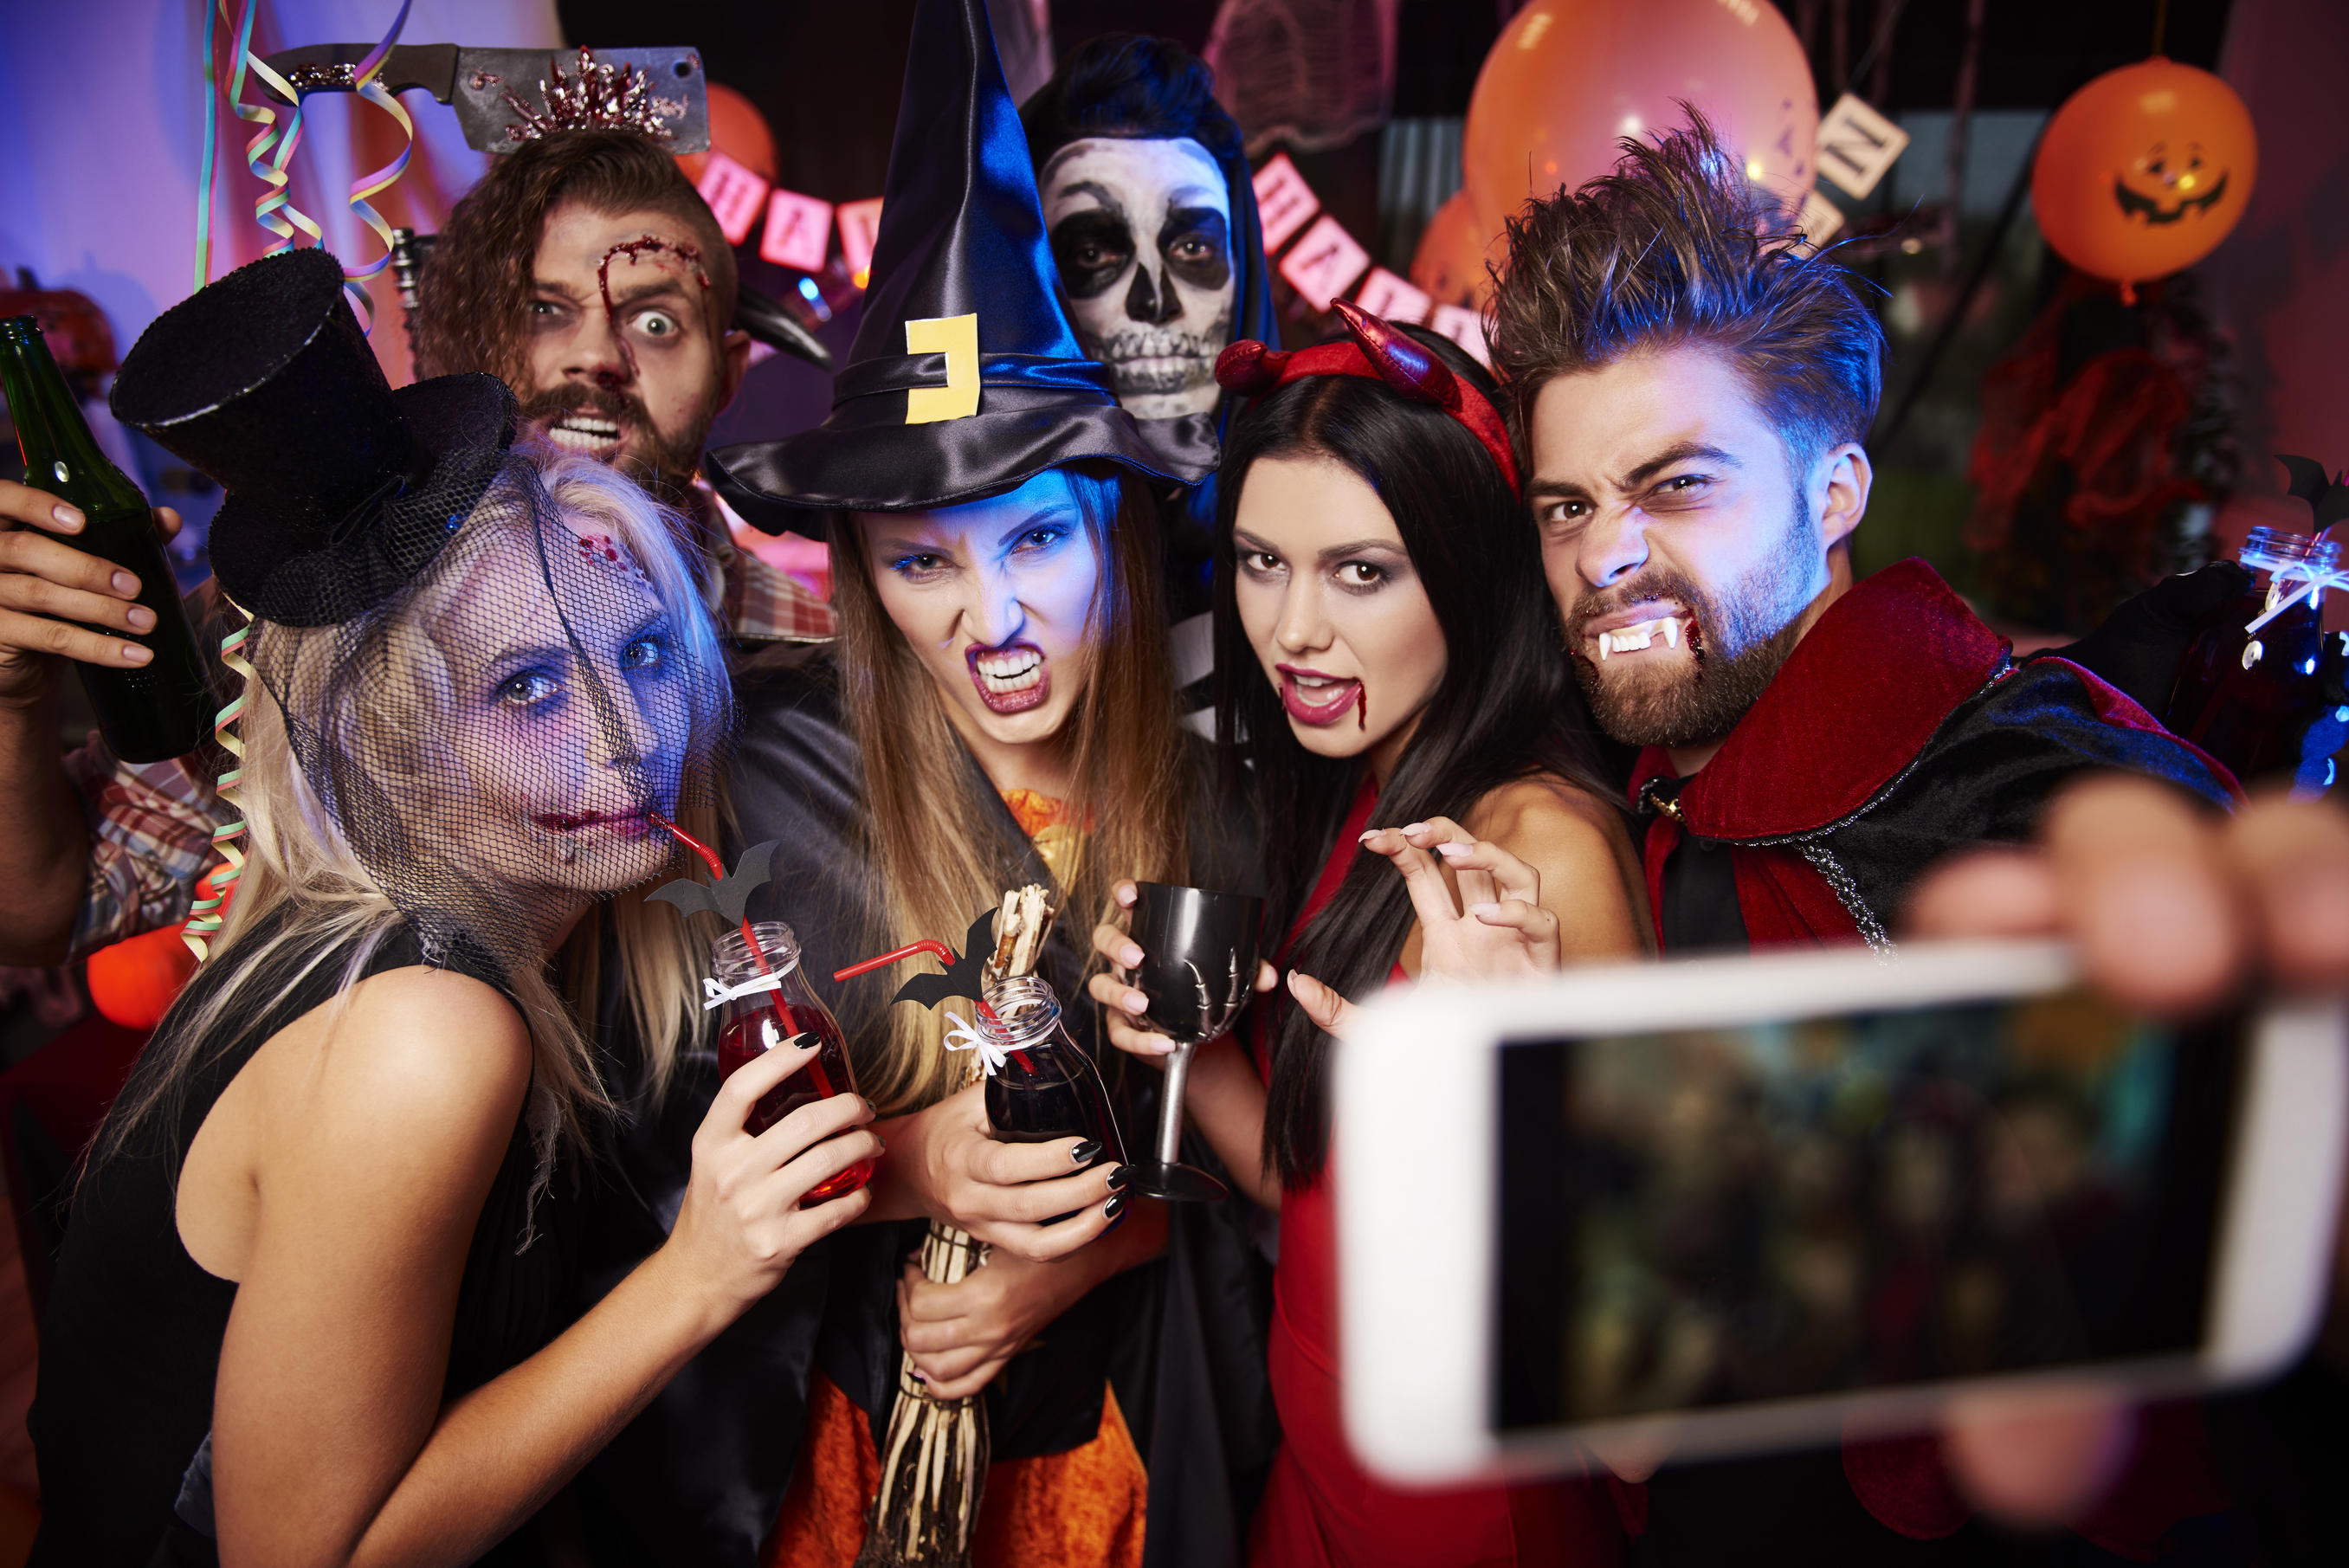 cce34ccafa279 University of Florida offers counseling for students offended by Halloween  costumes